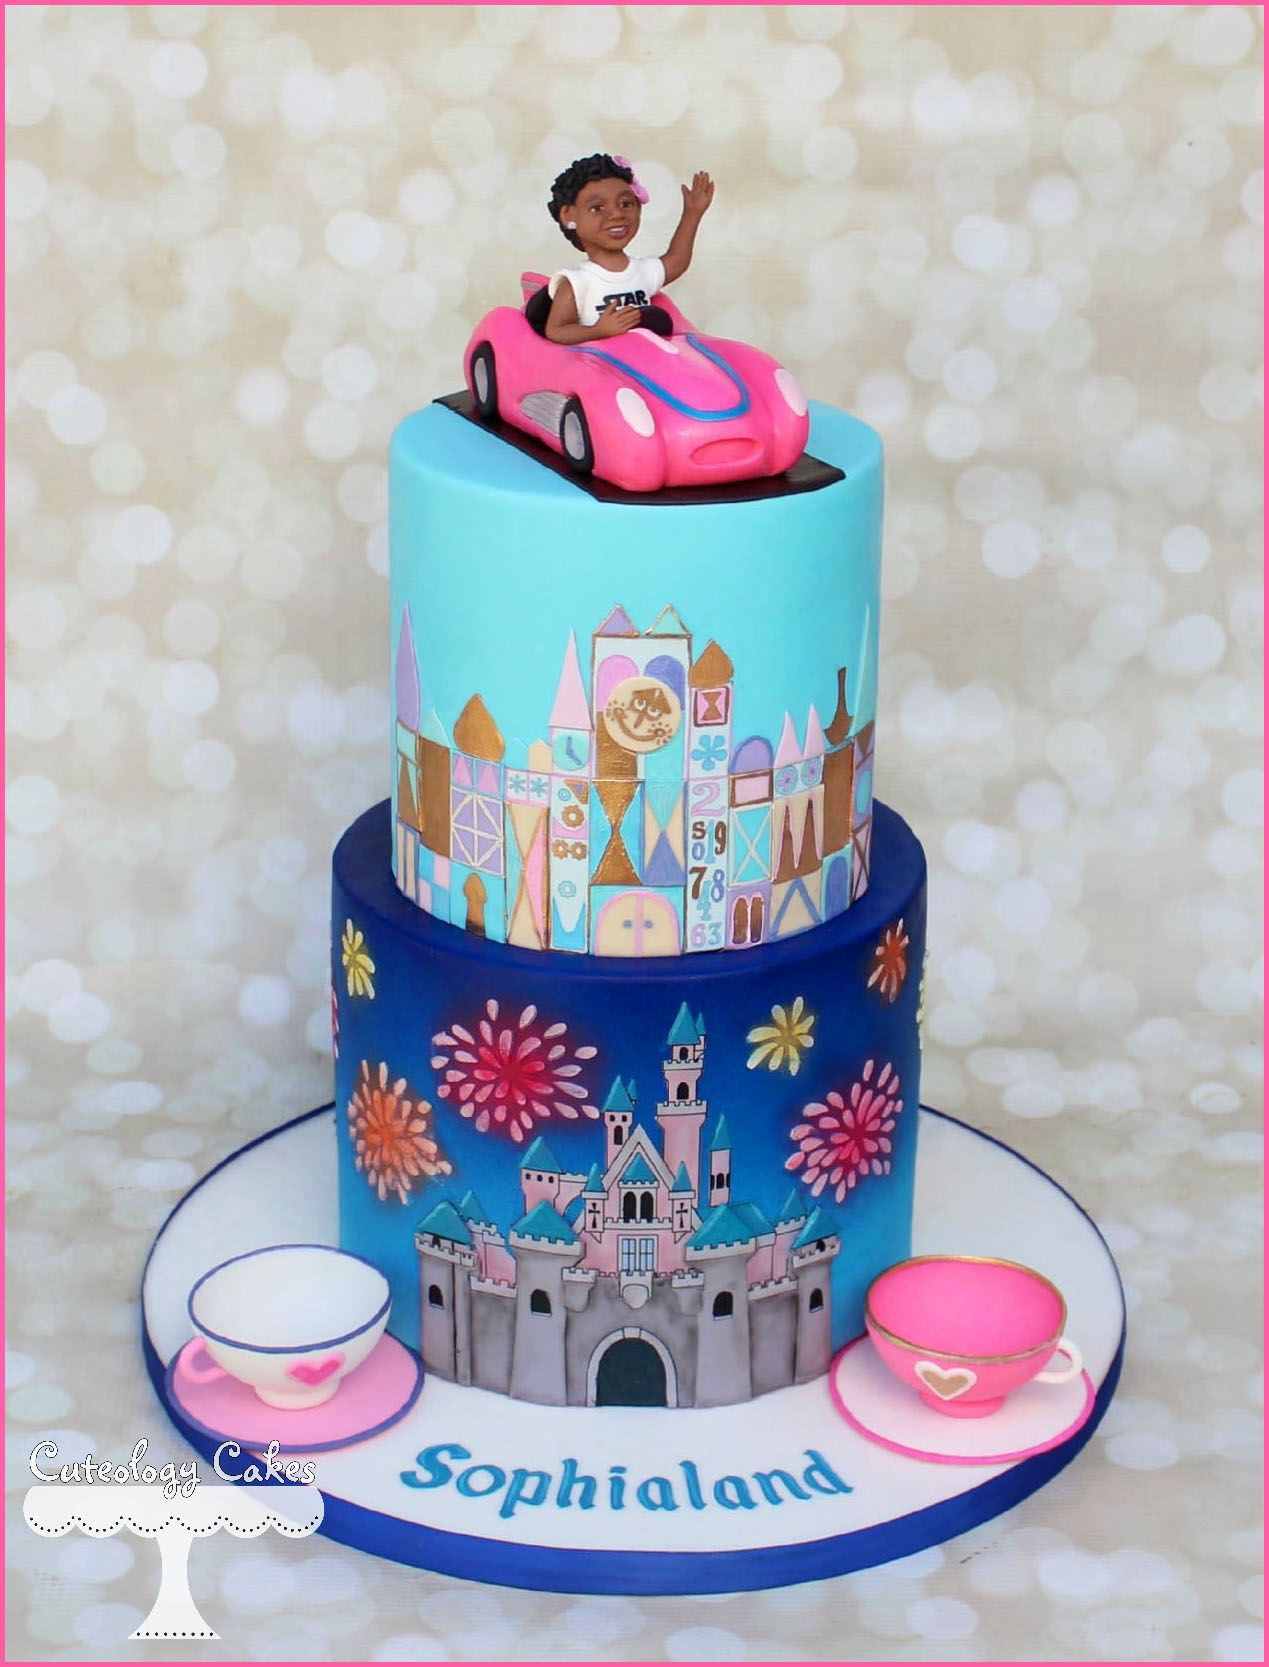 Peachy Disneyland Themed Cake With Its A Small World Teacups Autopia Funny Birthday Cards Online Chimdamsfinfo